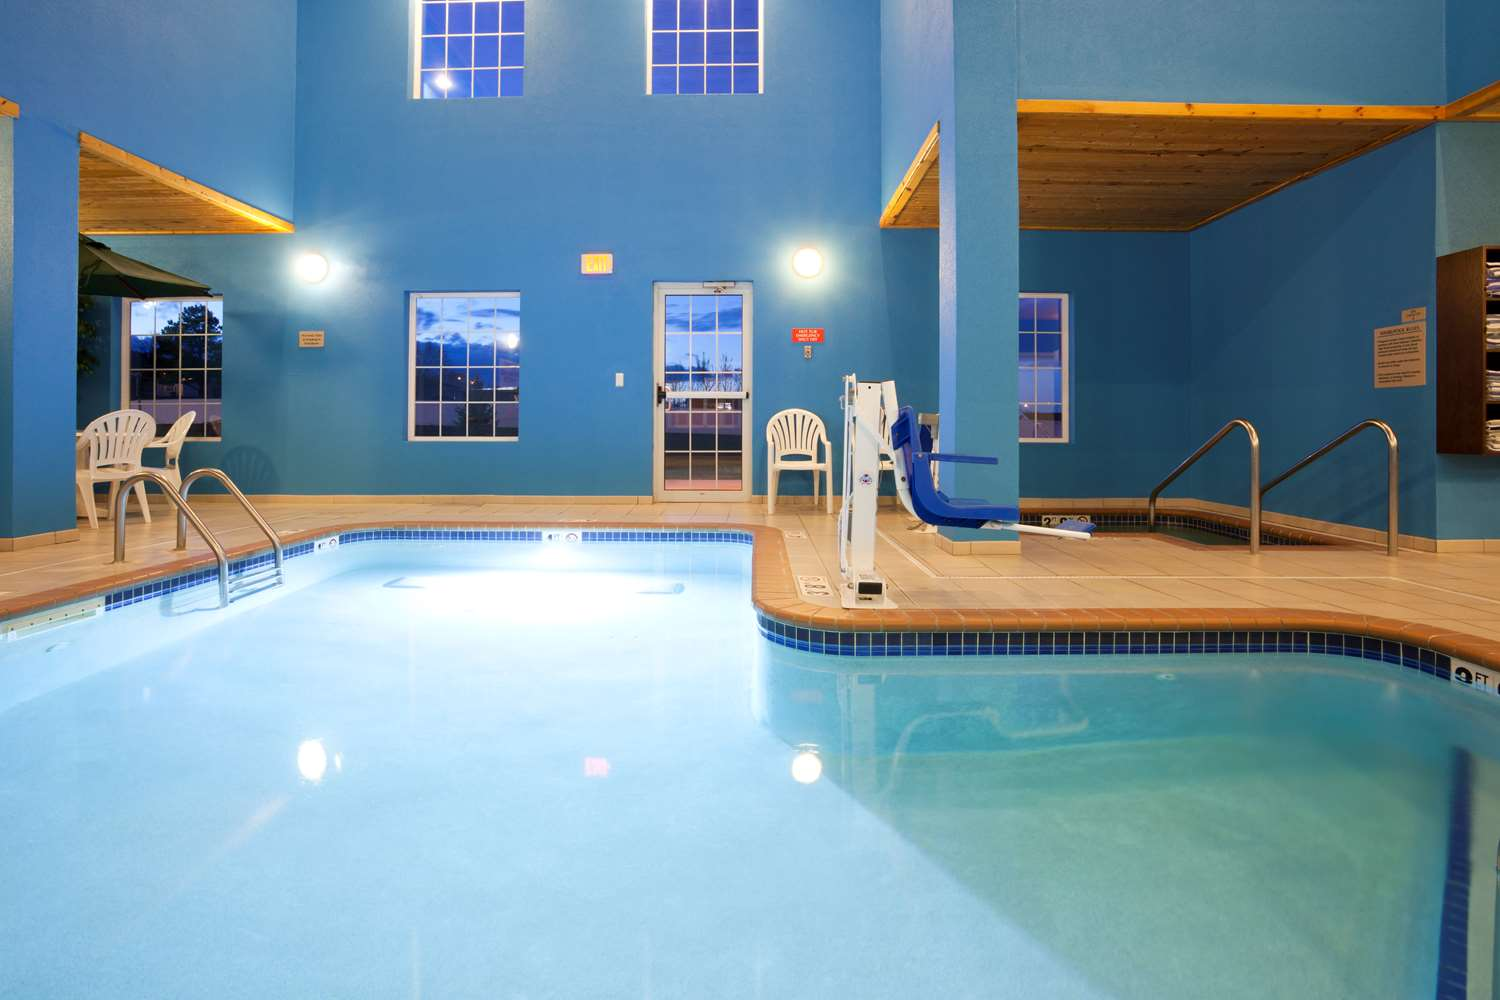 Pool - Grandstay Residential Suites Rapid City